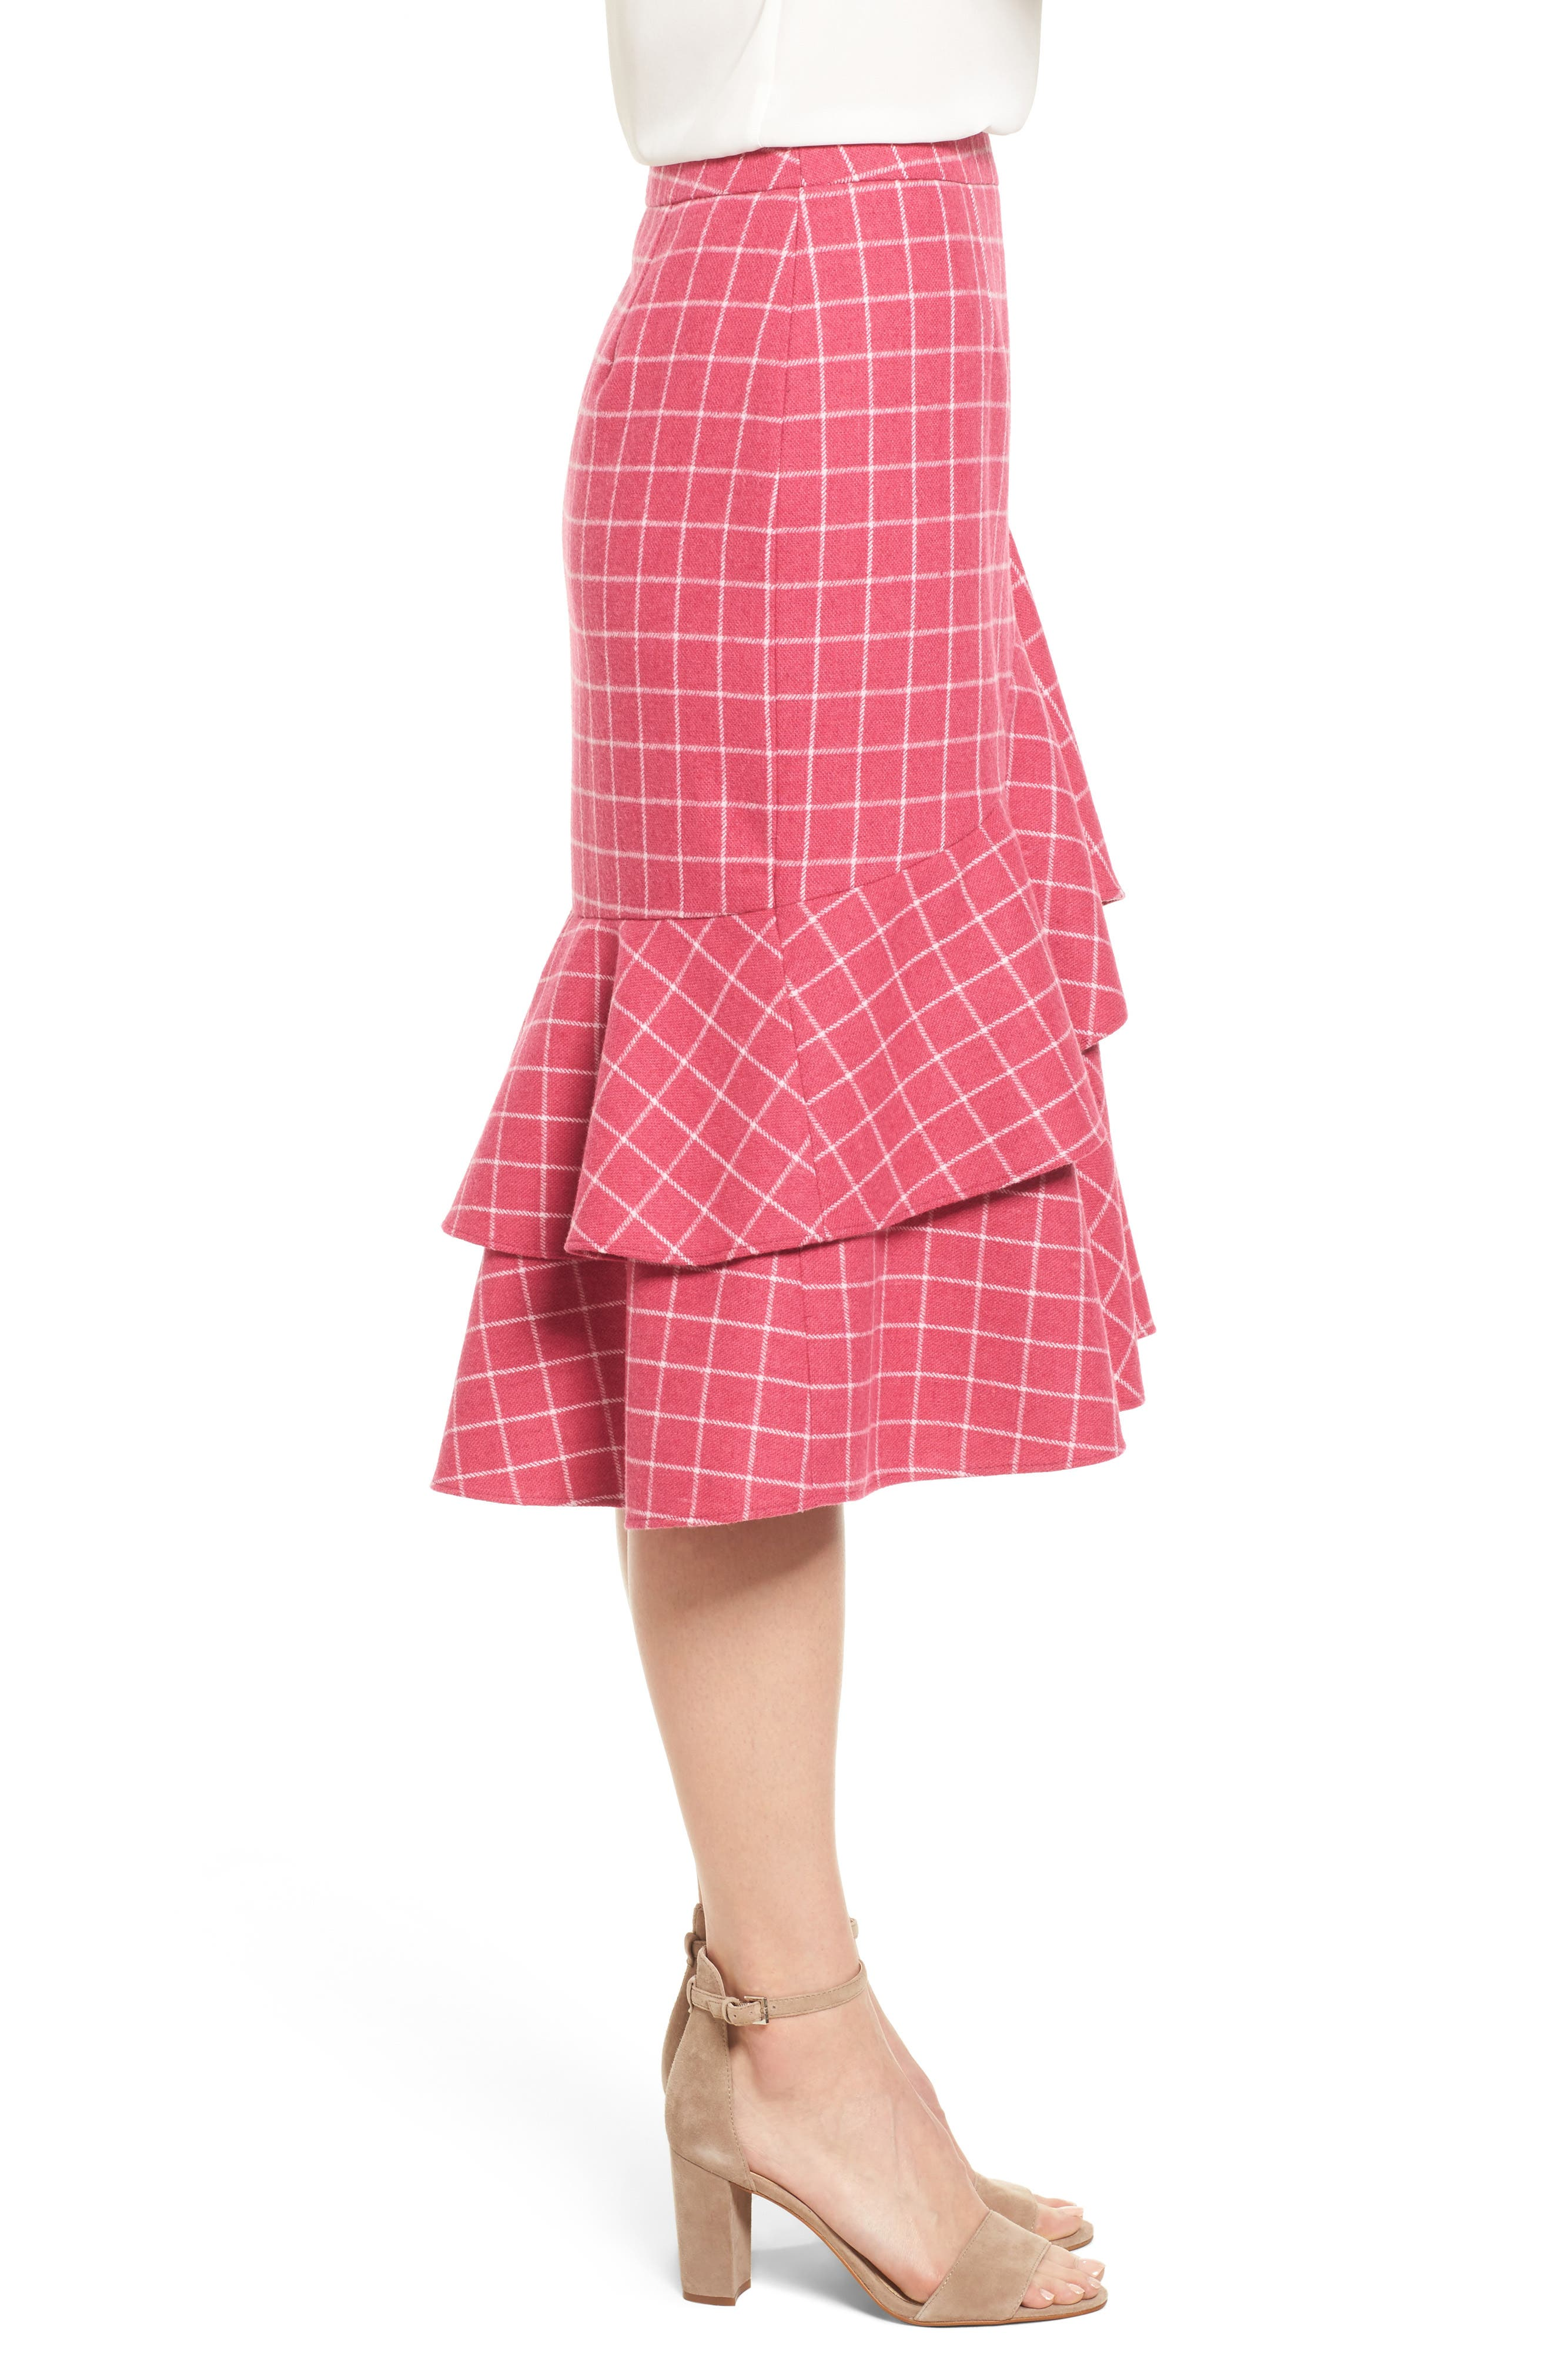 Windowpane Print Ruffle Skirt,                             Alternate thumbnail 3, color,                             Pink Windowpane